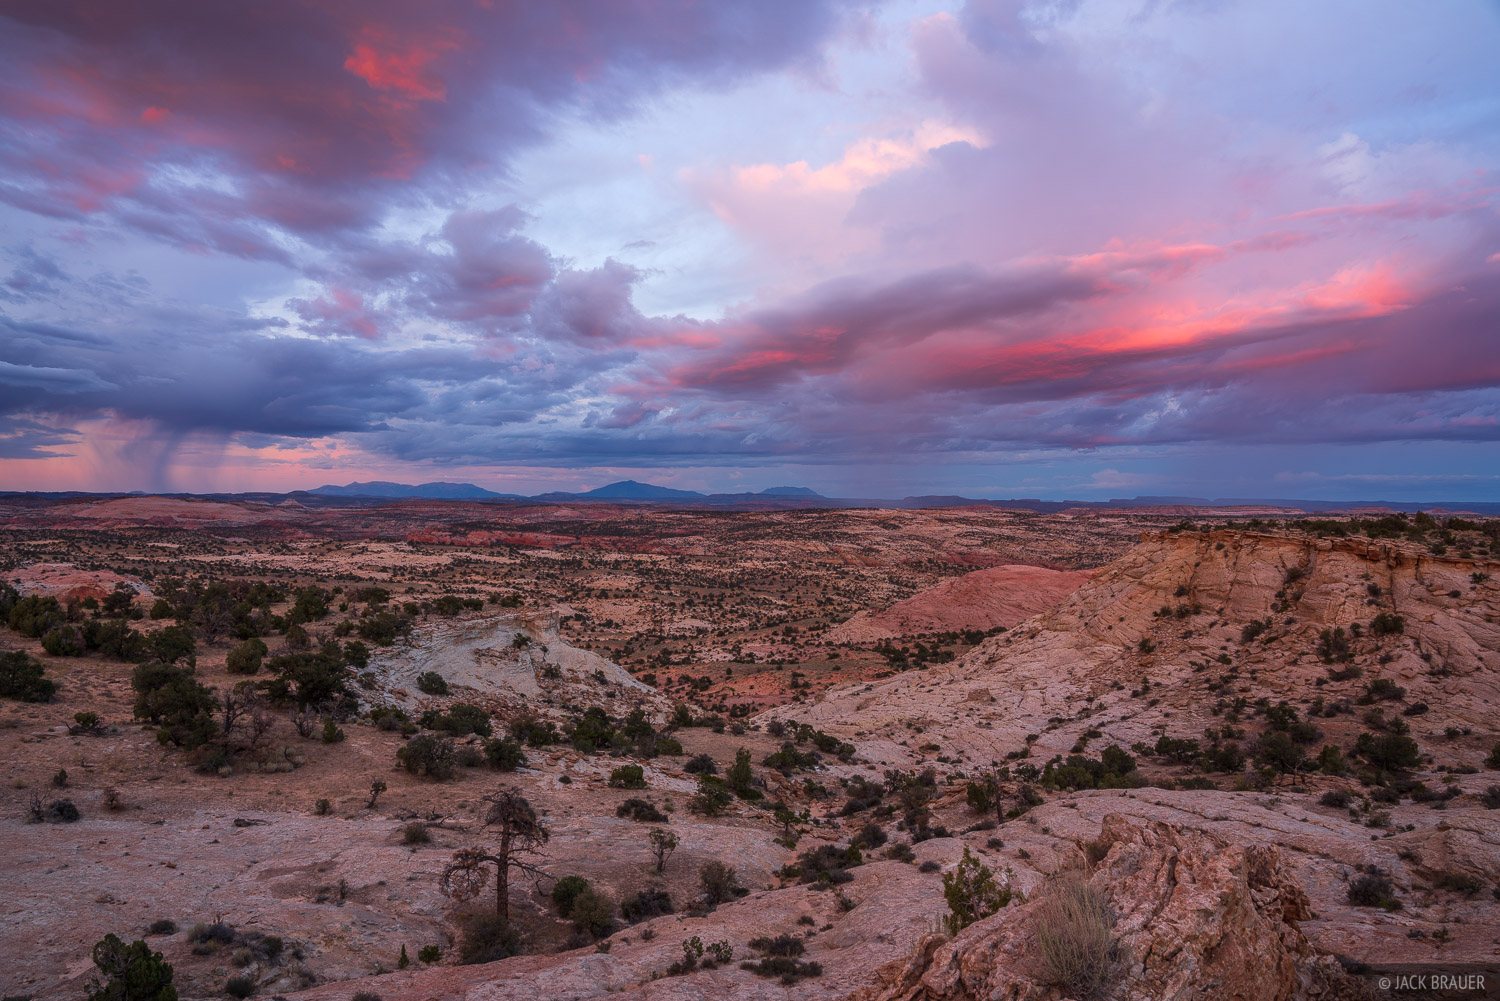 Sunset above the Escalante canyons and Henry Mountains.